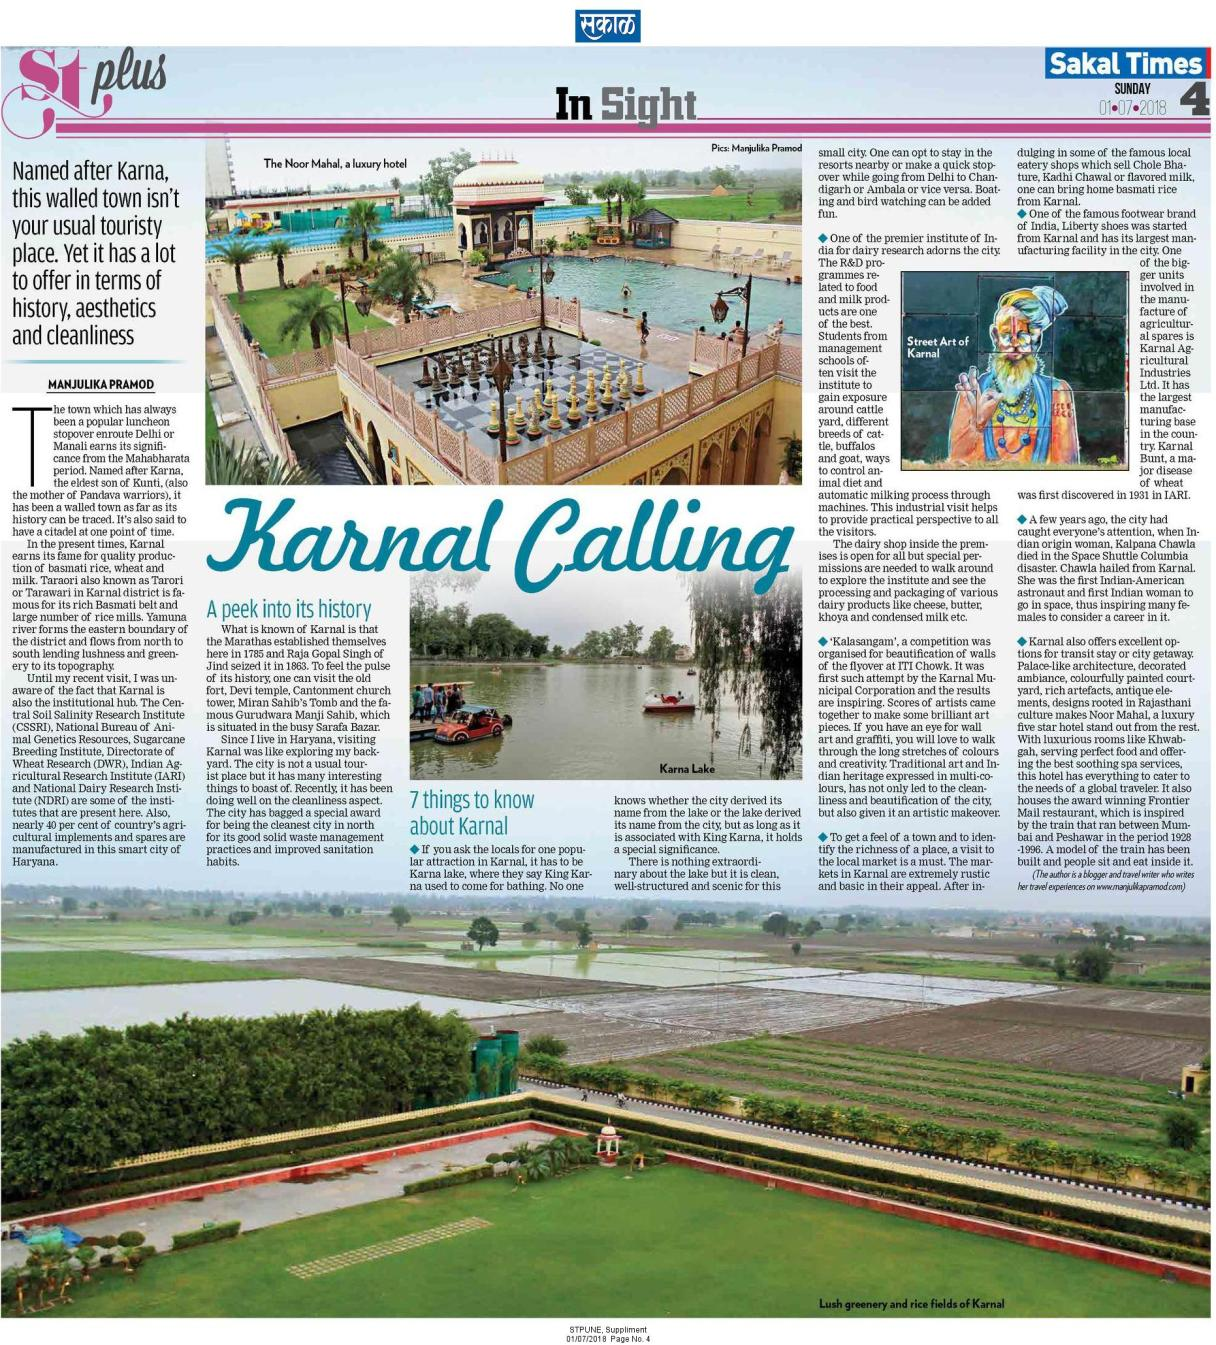 Karnal, Sakal Times, July, Noor Mahal